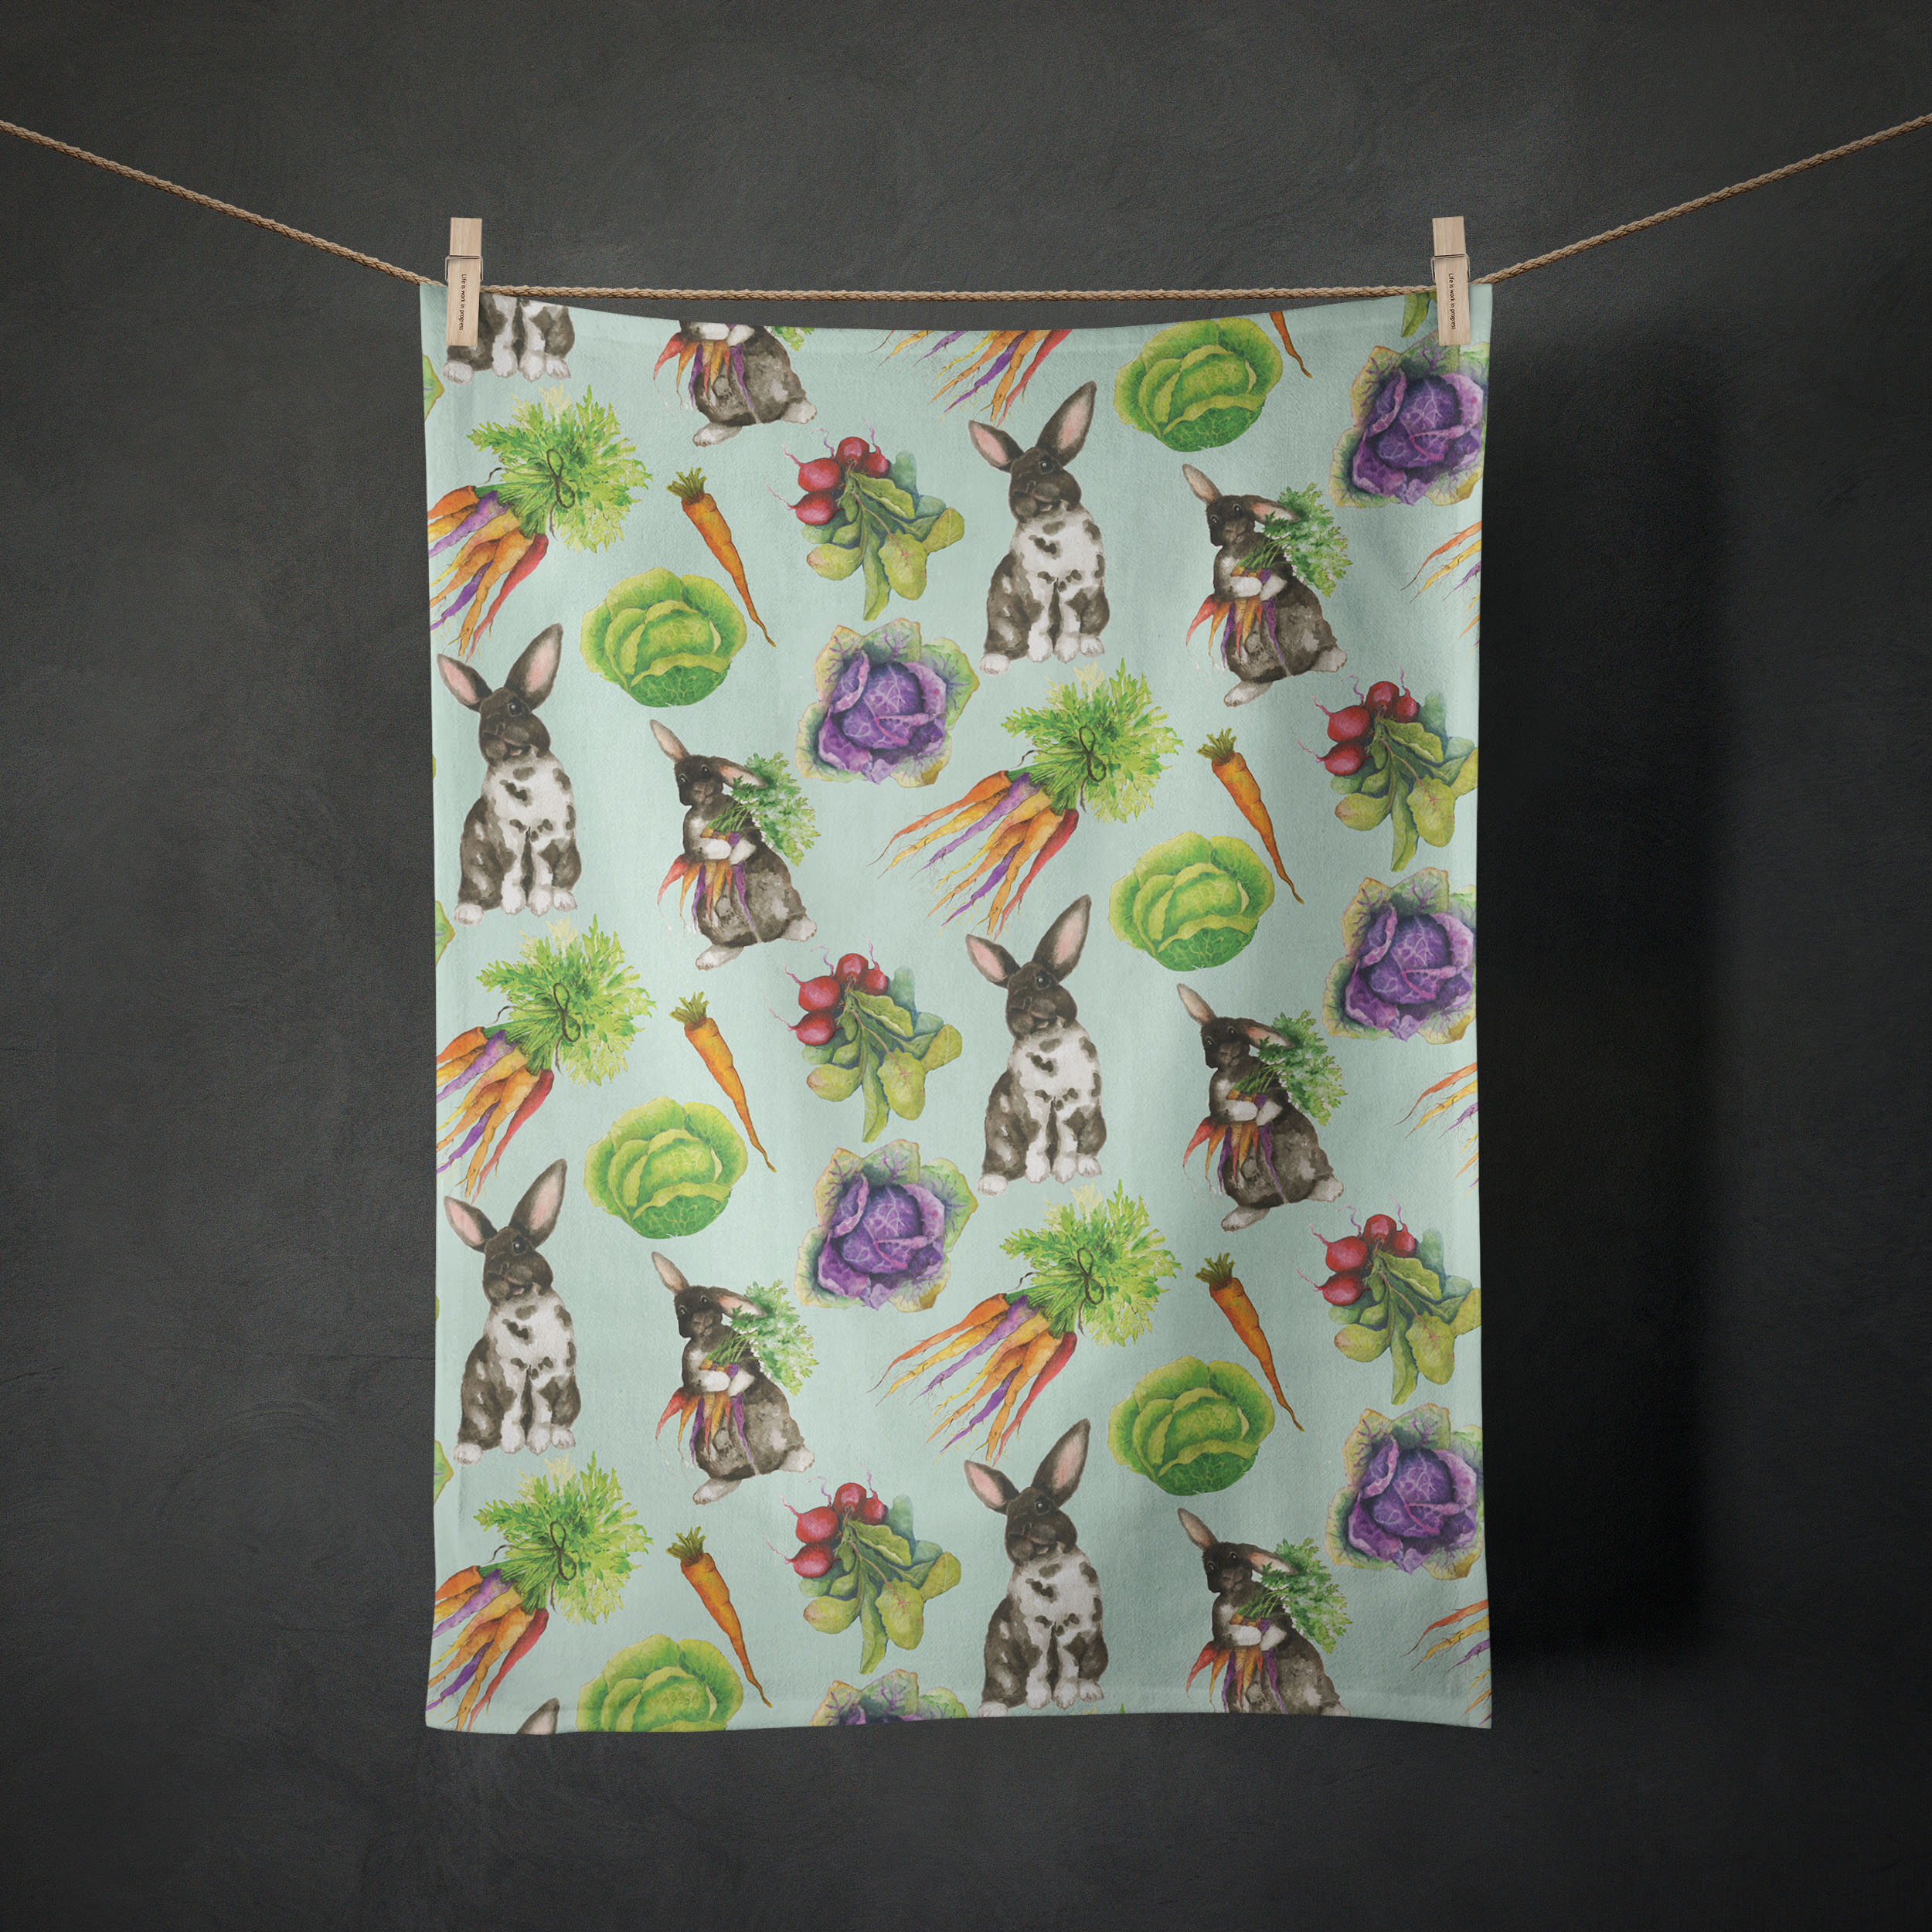 Show Here is one of the tea towels we will be giving away